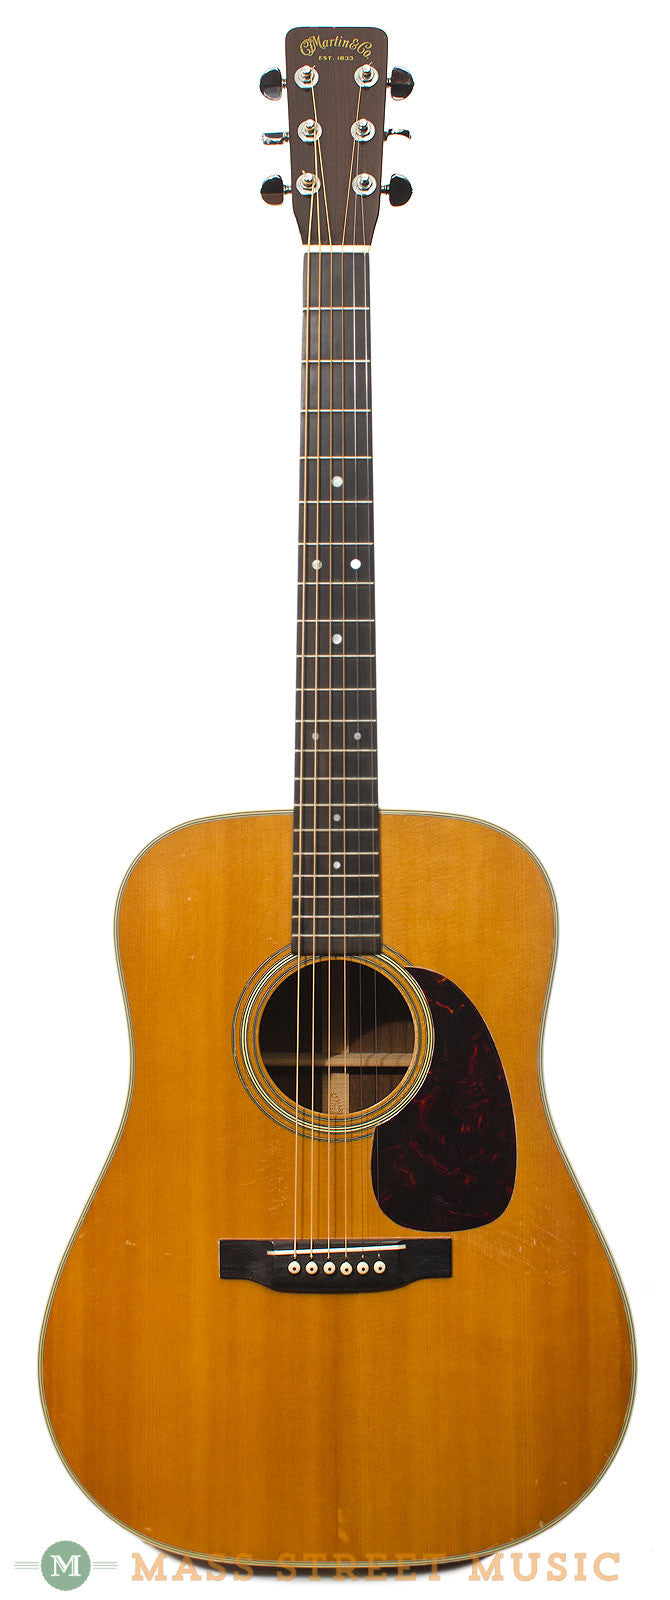 martin d 28 acoustic guitar from 1960 with original hard case mass street music store. Black Bedroom Furniture Sets. Home Design Ideas